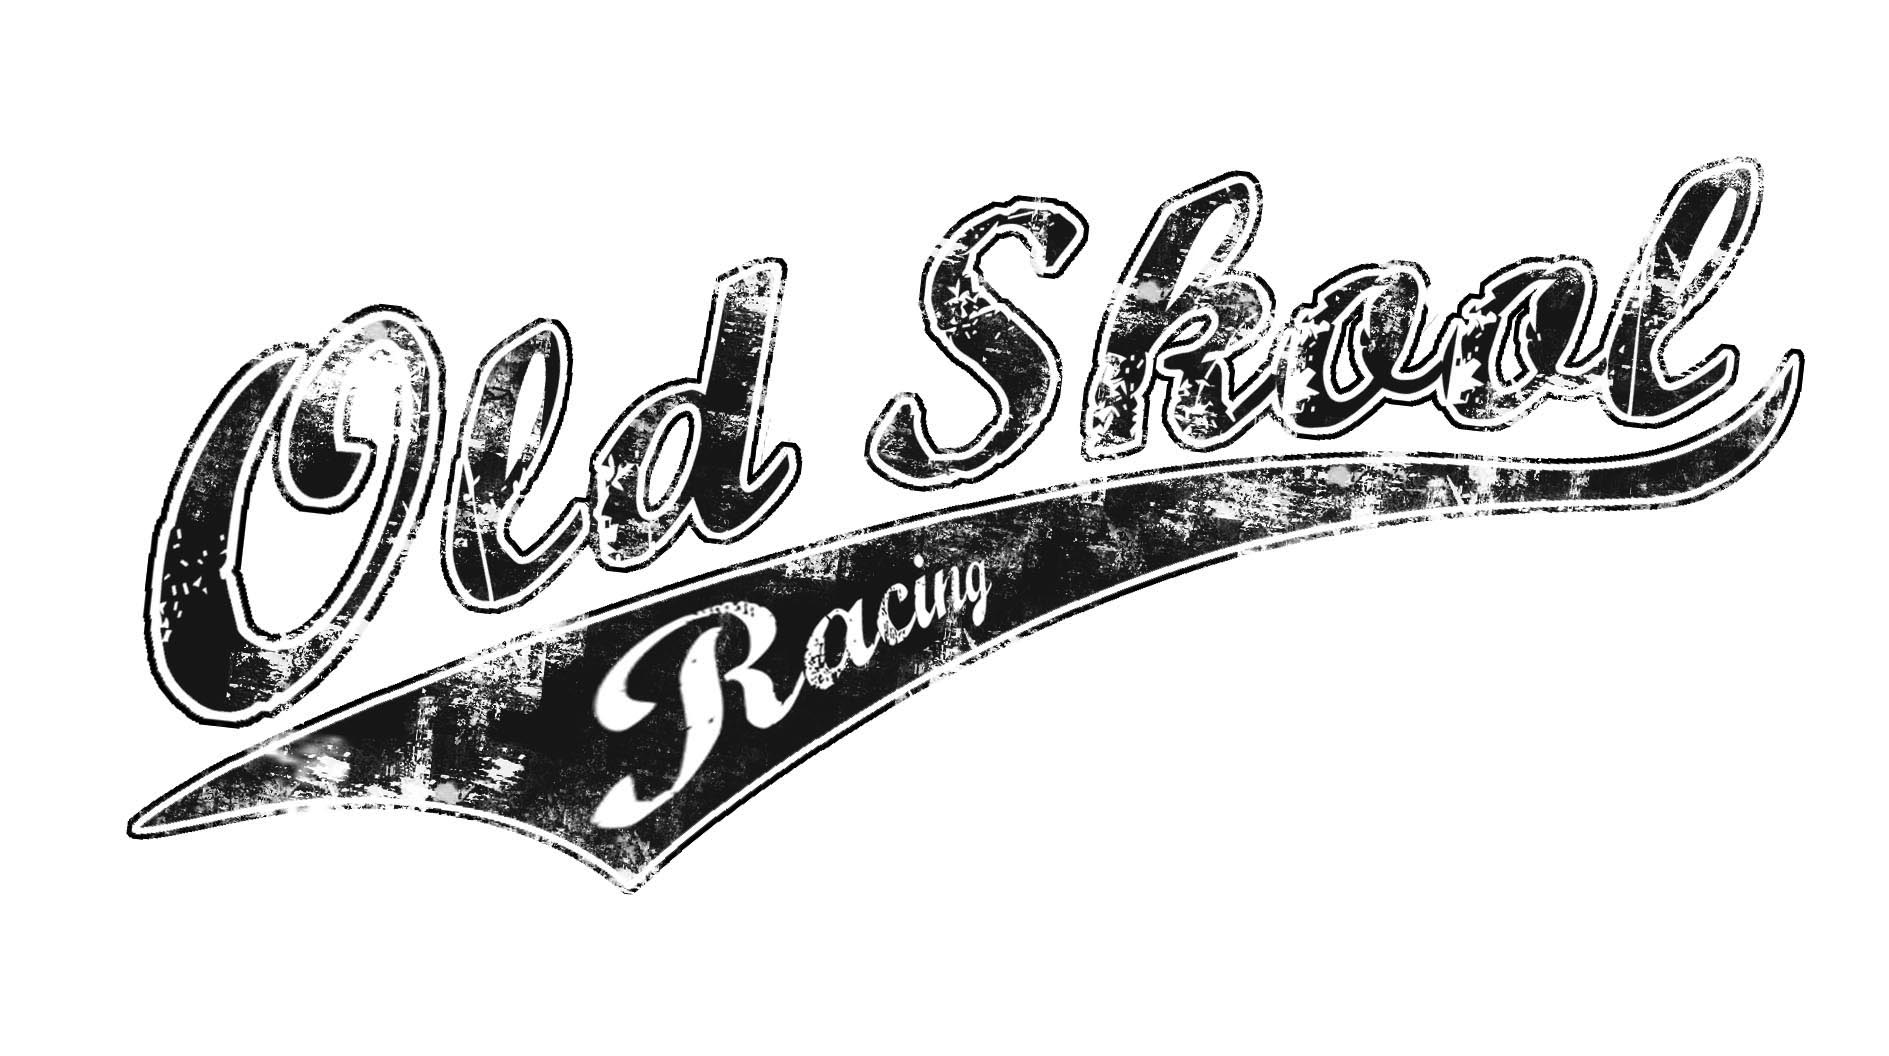 Retro Racing T Shirts Sweatshirts Tops And Dvds